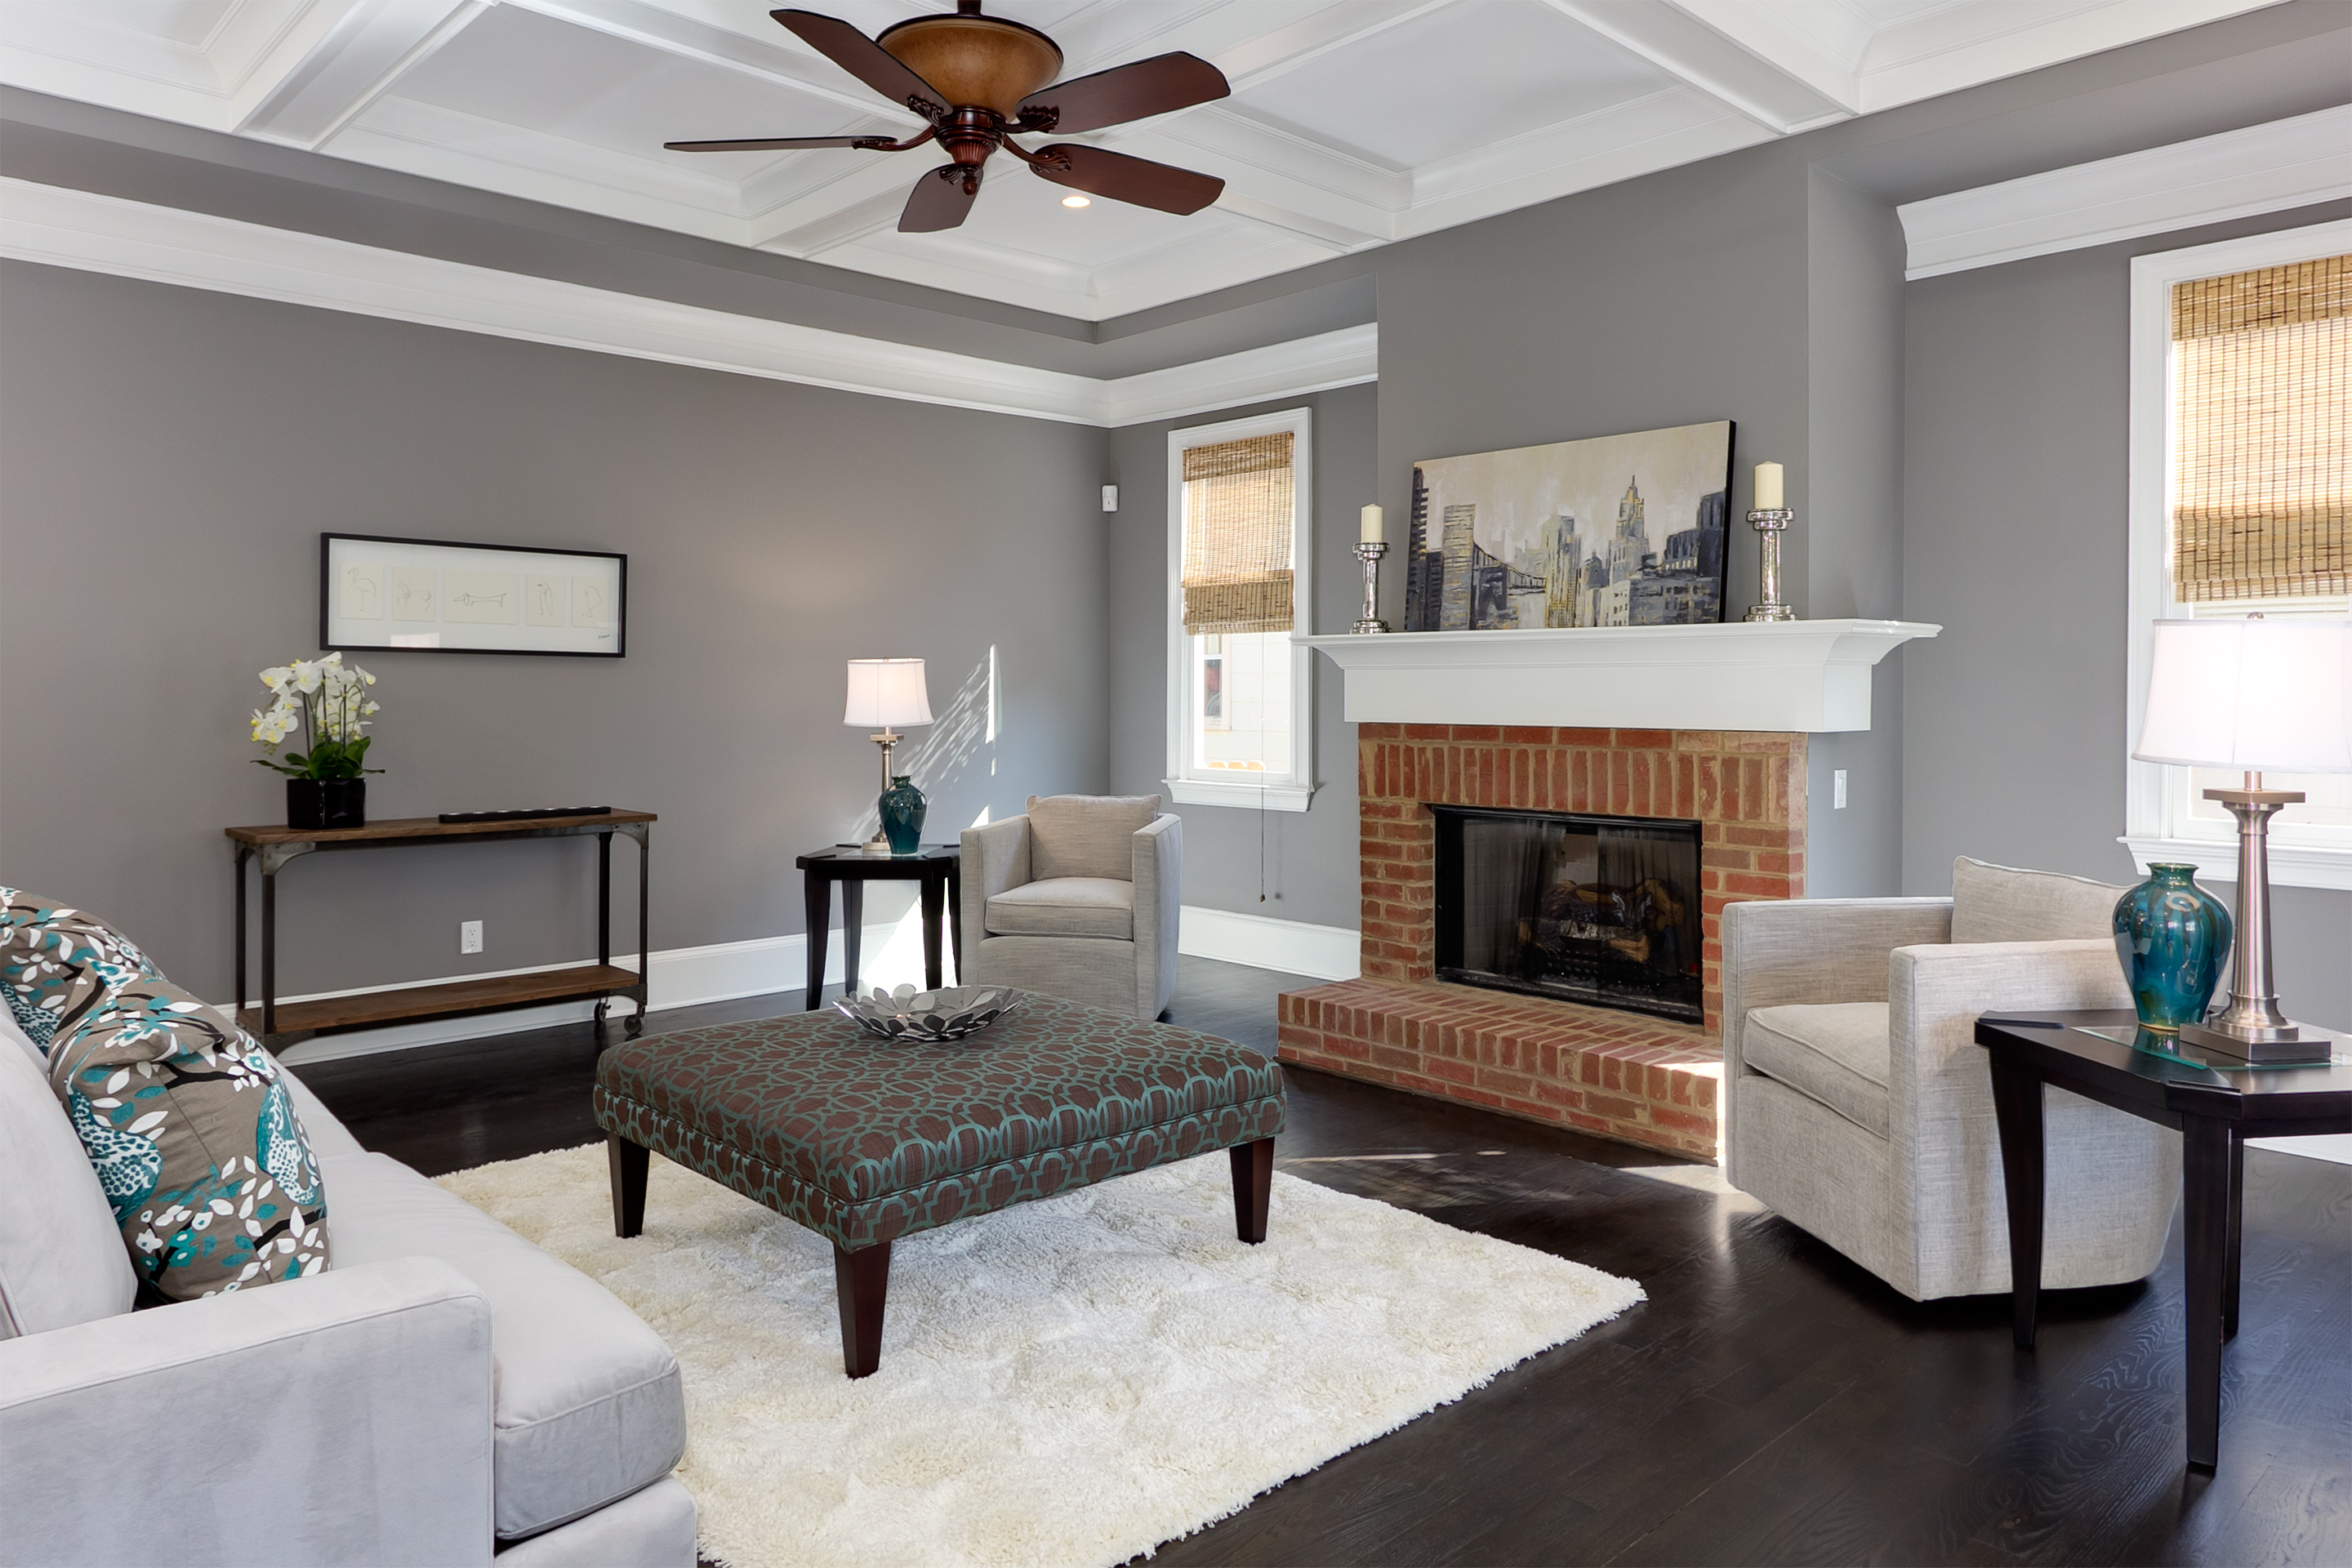 Blog atlanta real estate photographer iran watson photo - Decoration salon gris et blanc ...